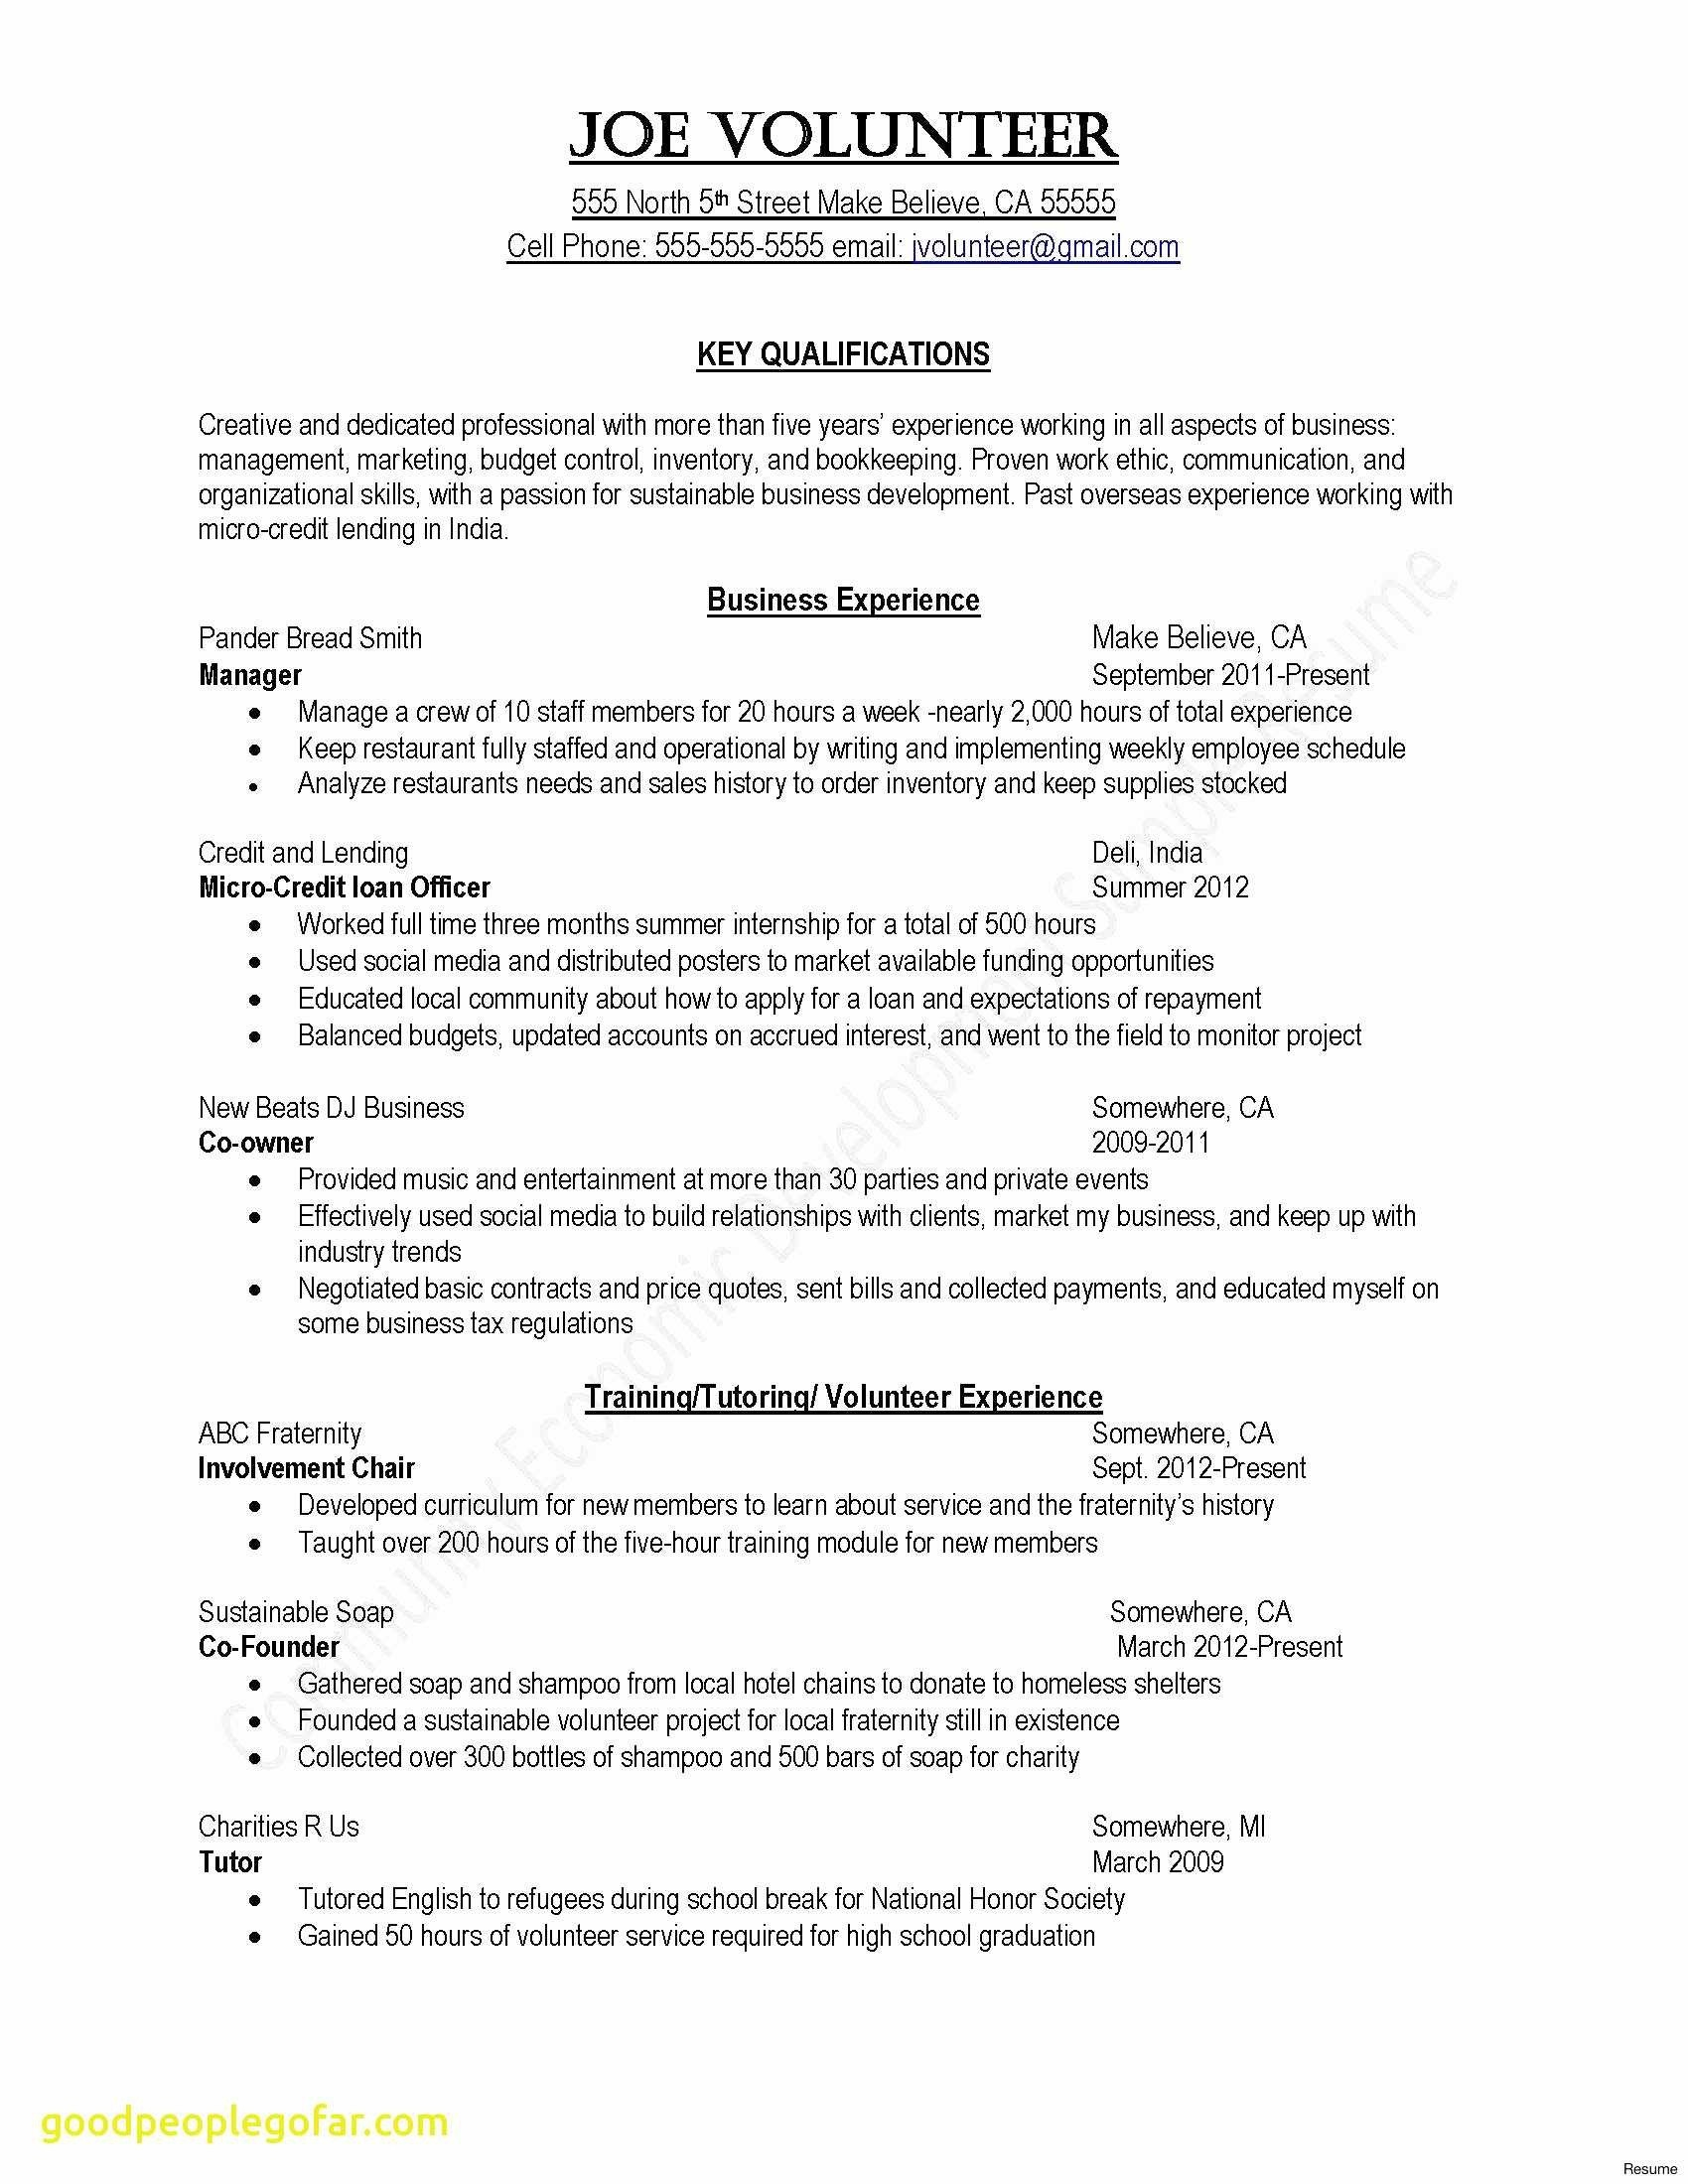 contractor resume example-General Contractor Resume Inspirational Elegant Sample College Application Resume Lovely Painter Resume 0d 17 Beautiful 1-j